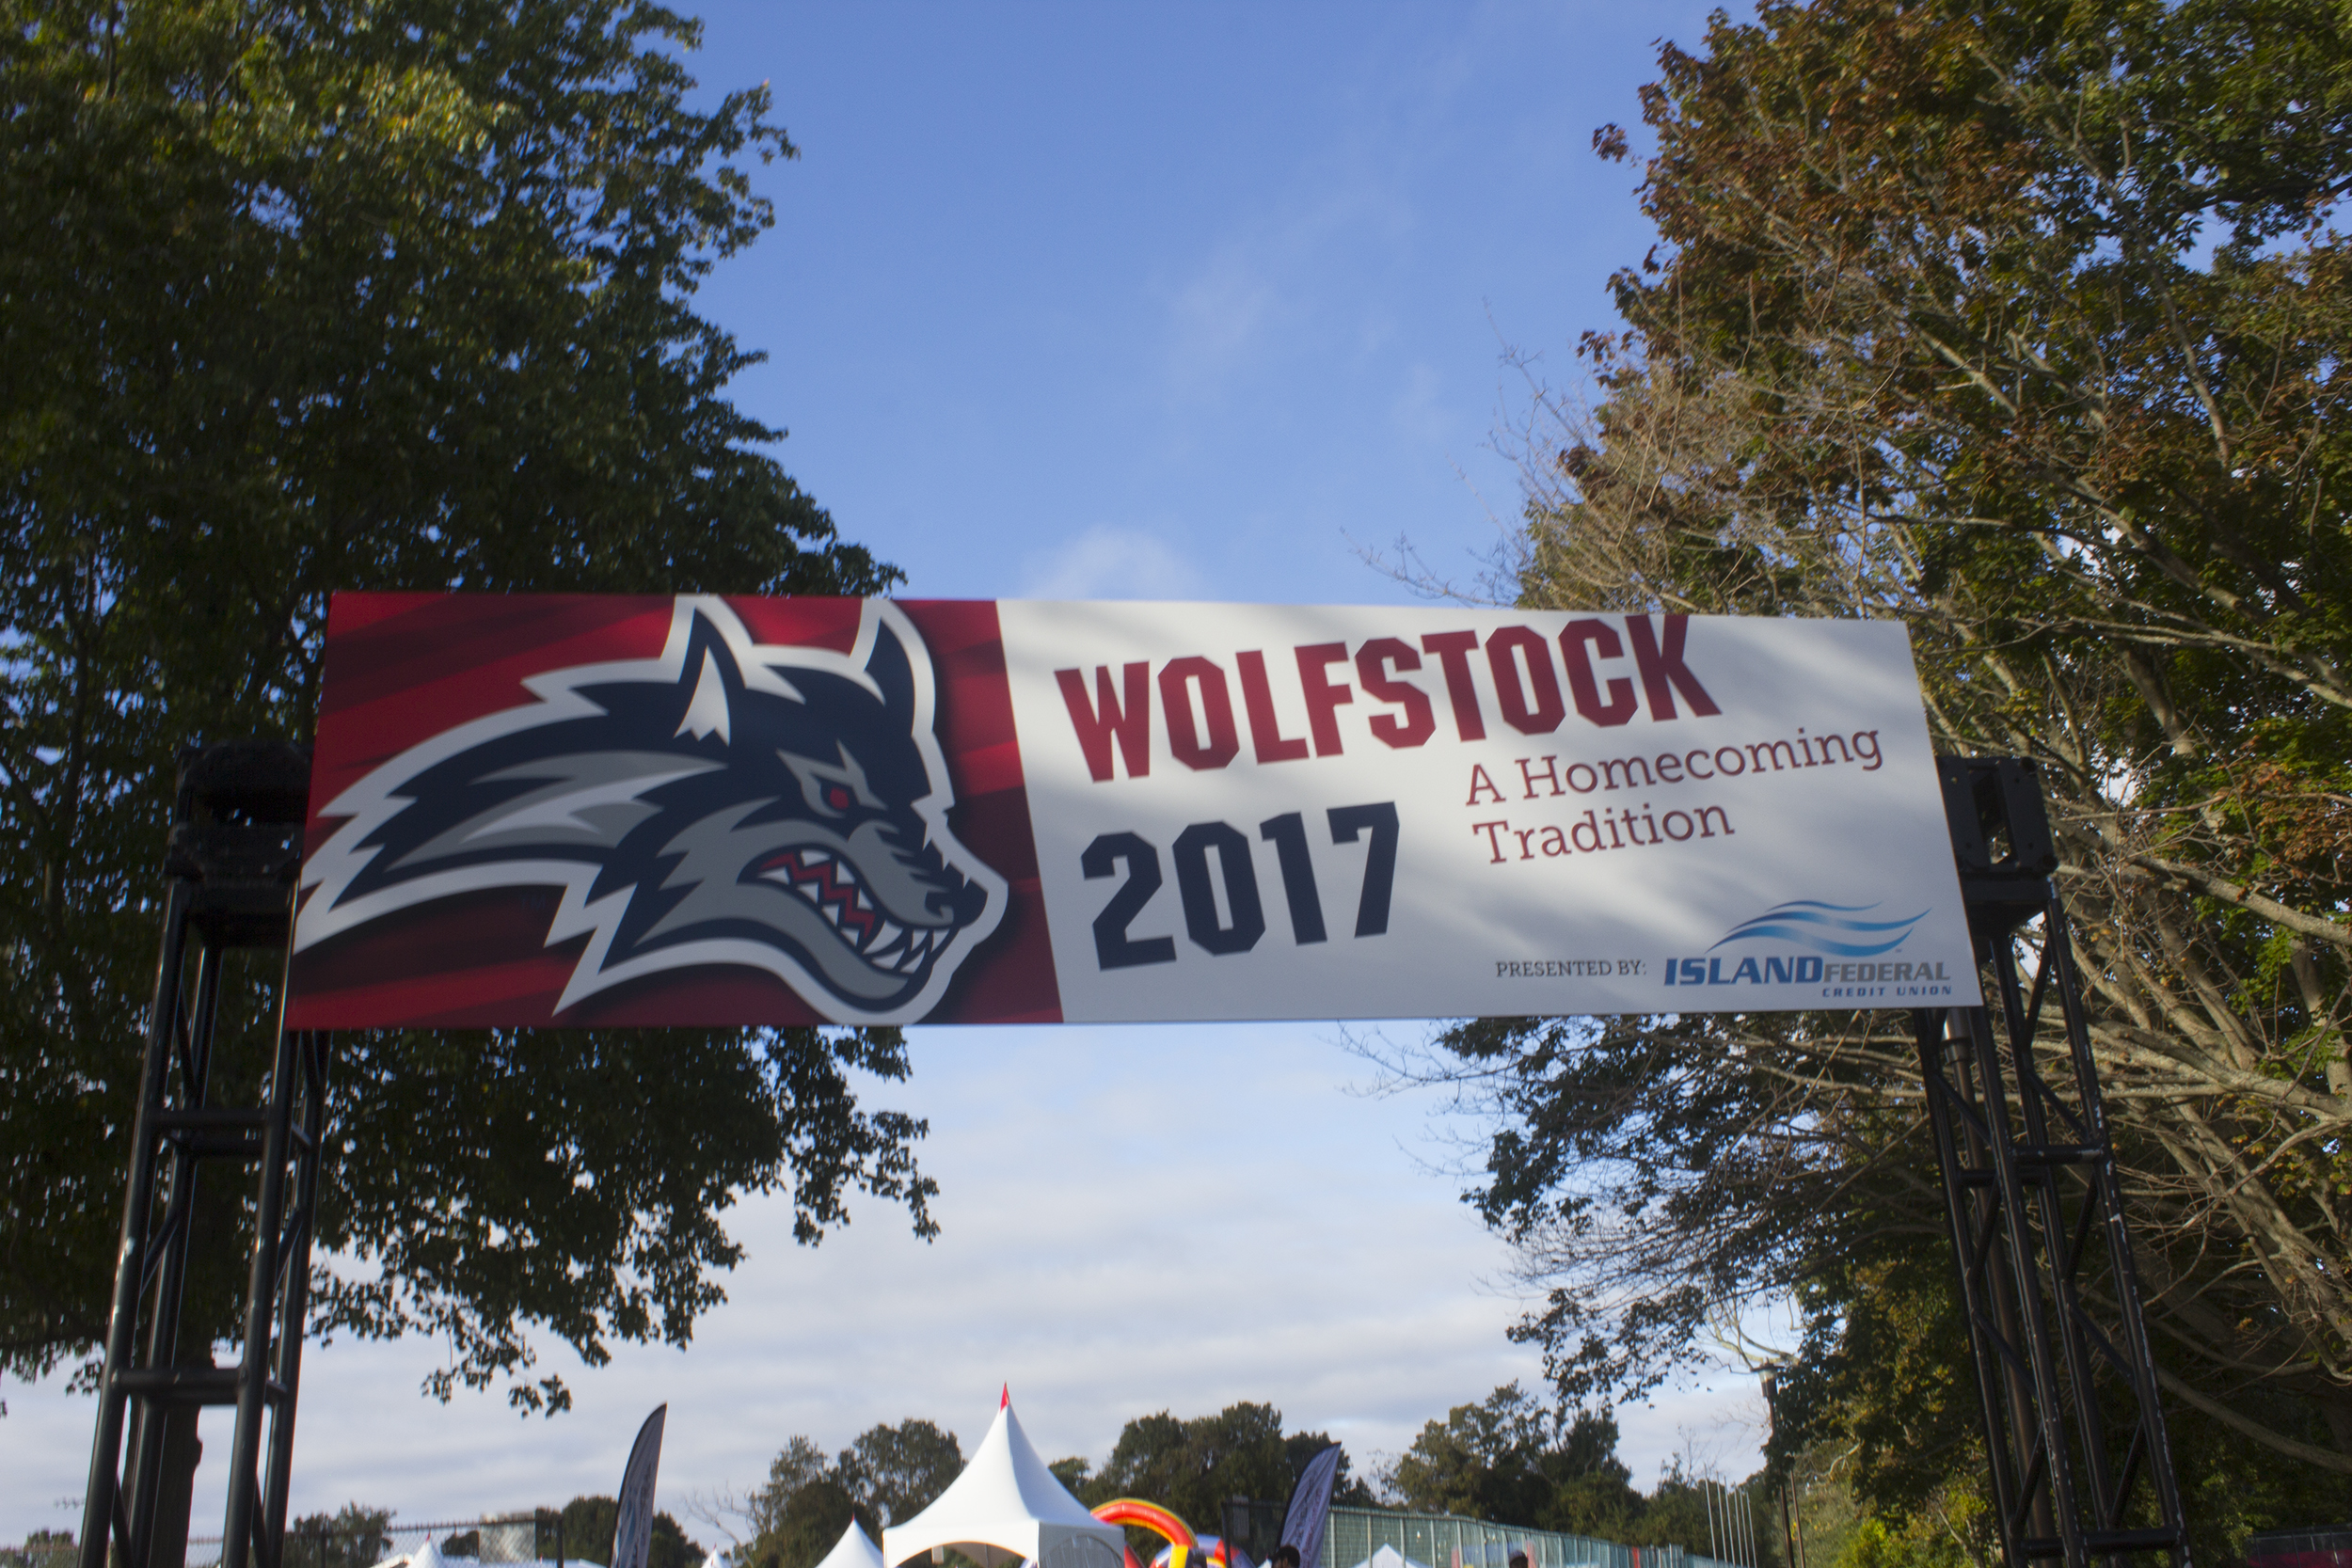 Homecoming celebrations continued on Saturday afternoon with Wolfstock Village. ANNA CORREA/THE STATESMAN